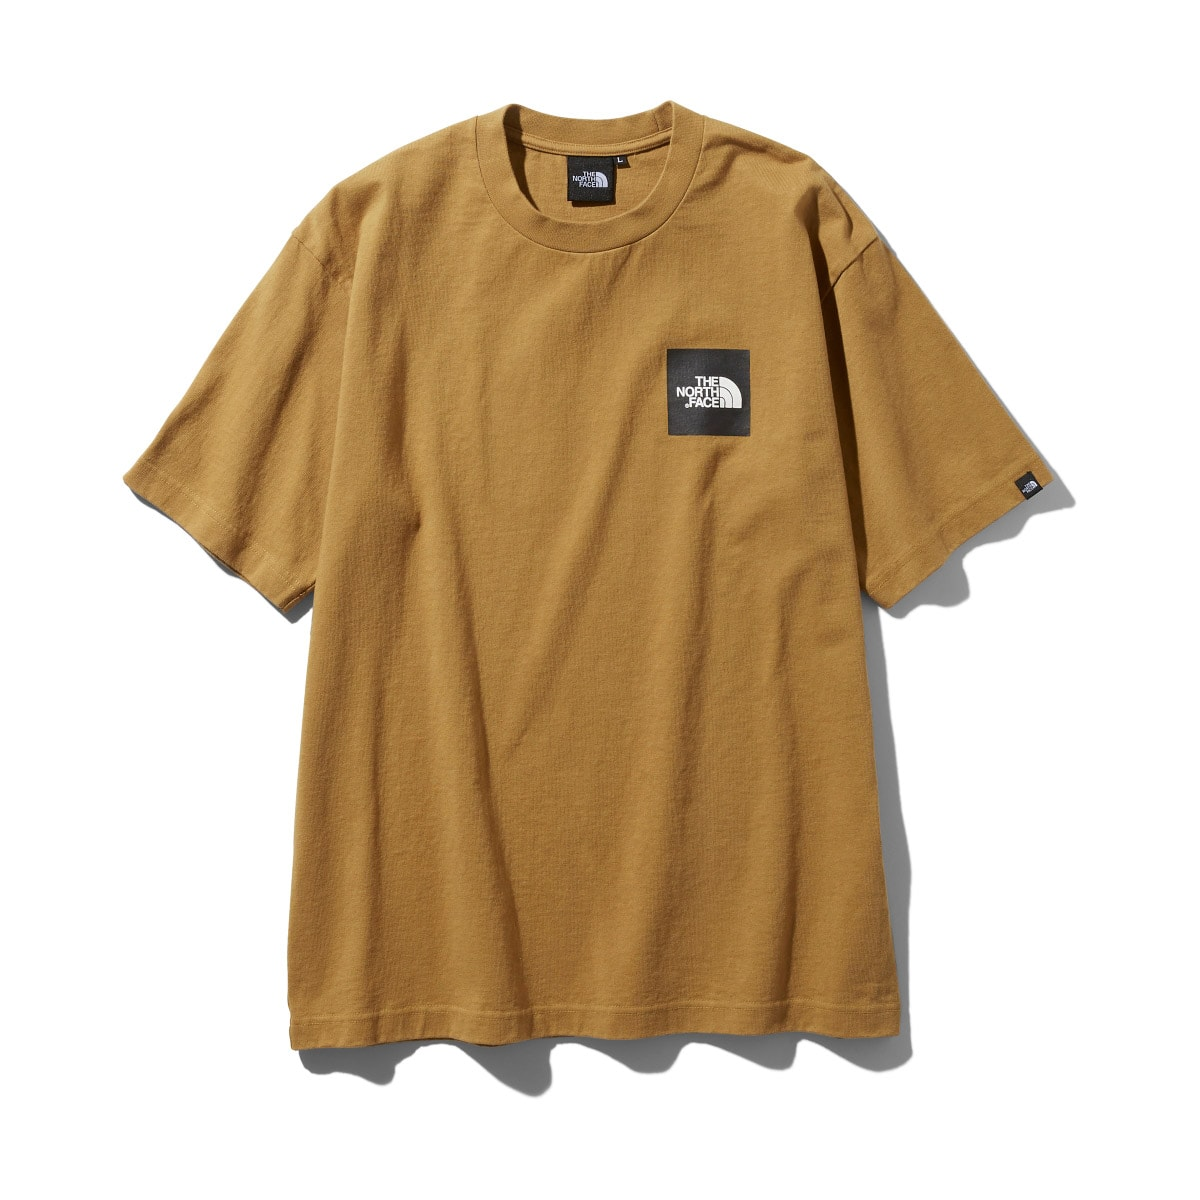 THE NORTH FACE S/S SQUARE LOGO TEE ブリティッシュカーキ 19FW-I_photo_large